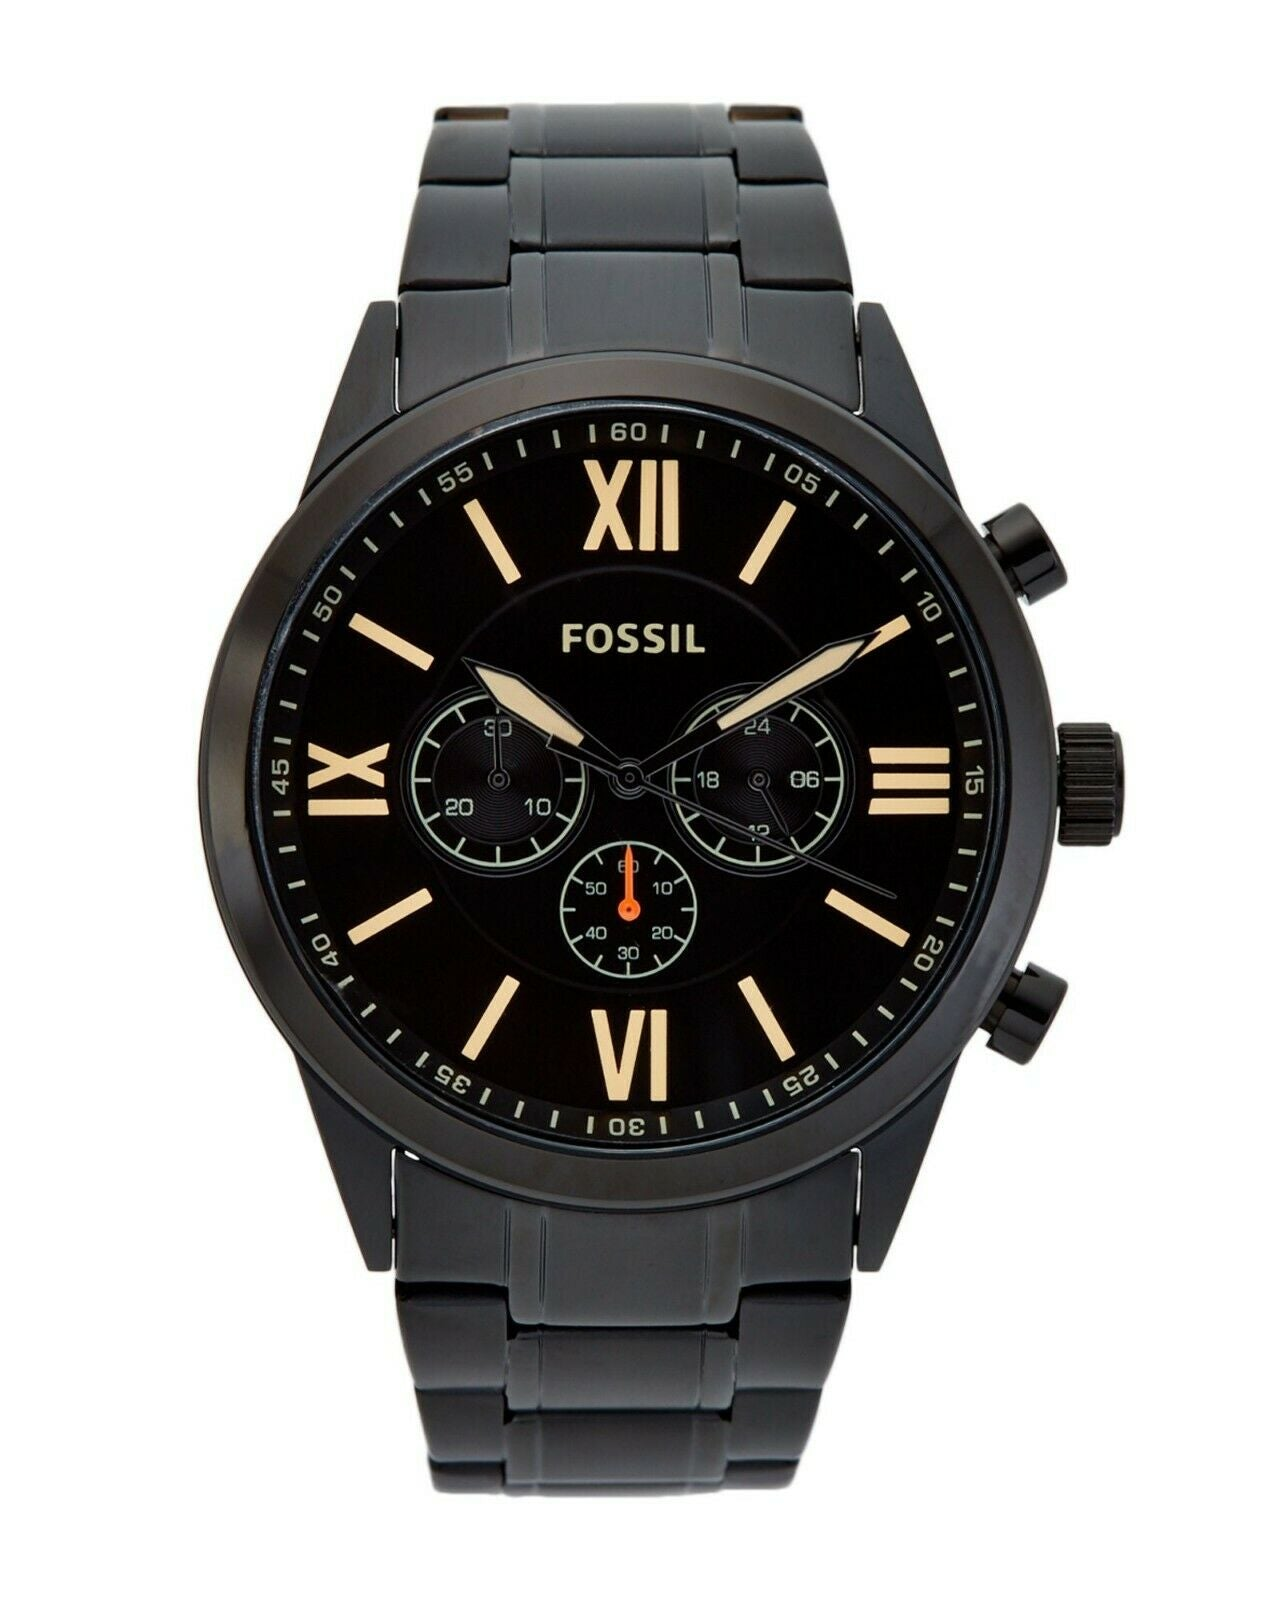 Fossil Flynn Chronograph Watch BQ2151 Men's Black Stainless Steel $165